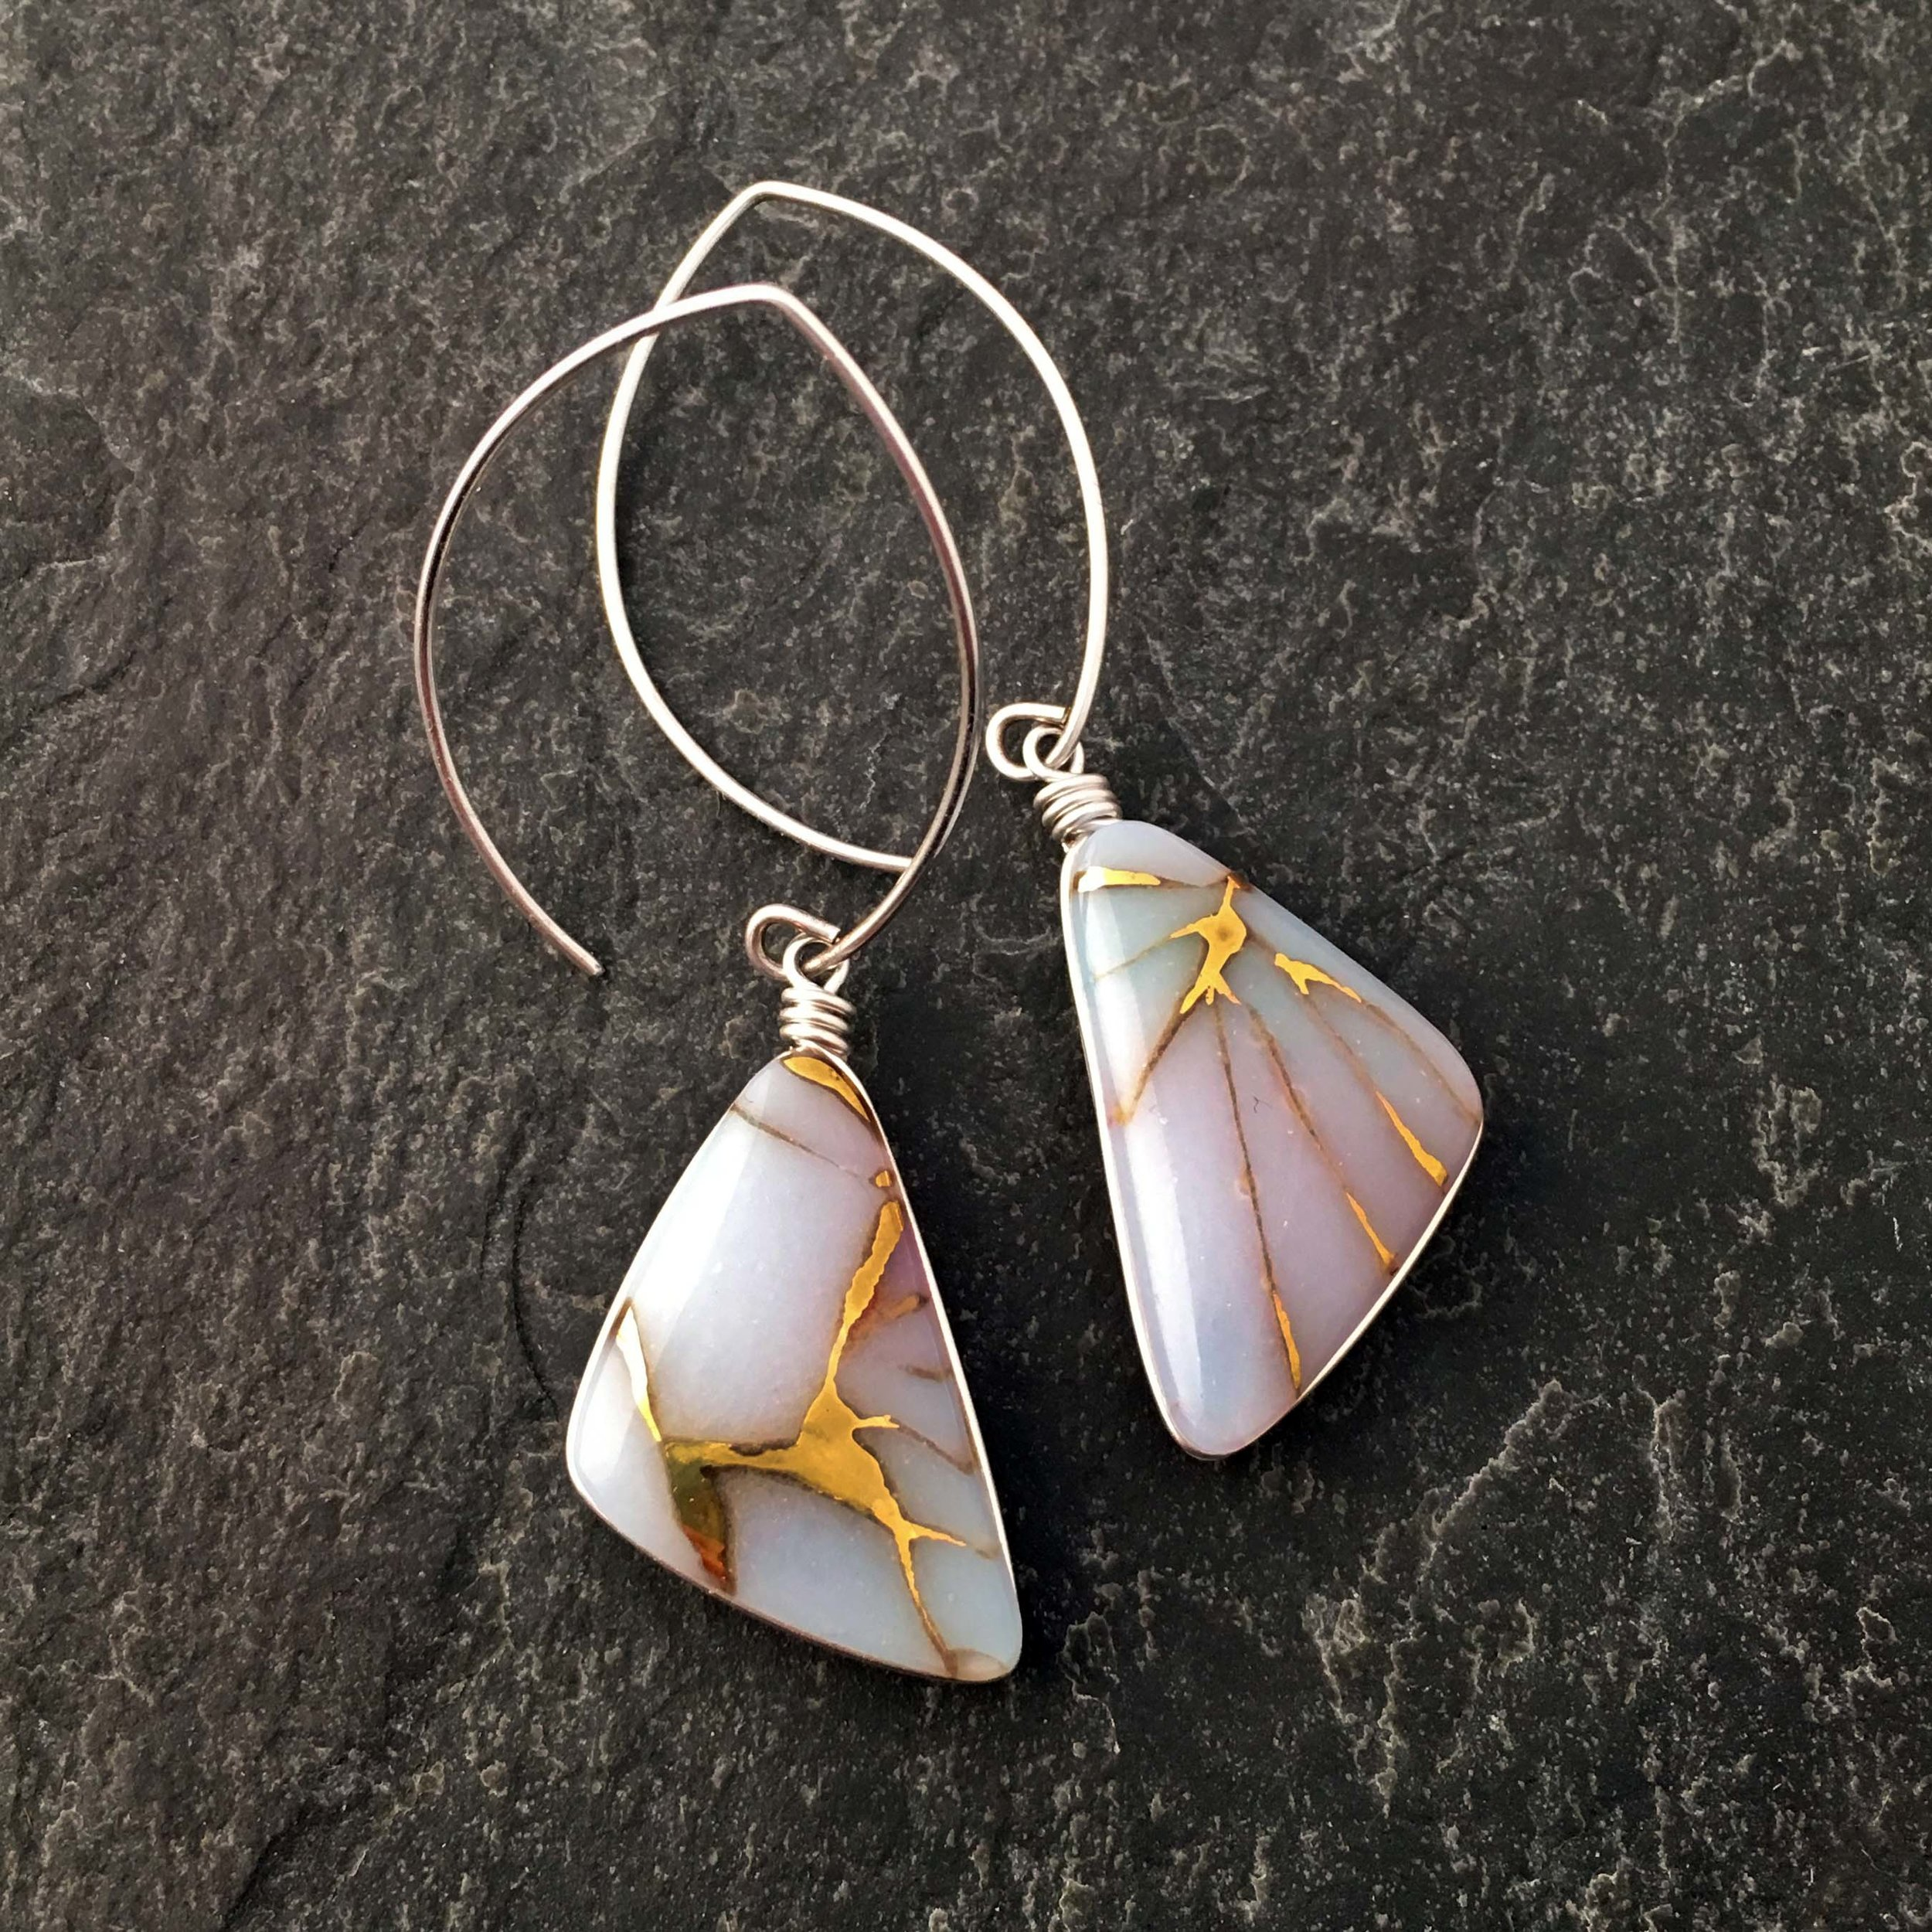 """Golden Veins Earrings, Kiln Formed Art Glass, .75"""" x 2.25"""" x .25"""", Earrings, kiln formed art glass painted with gold luster, Argentium sterling silver wire setting and ear wires, $67.00."""